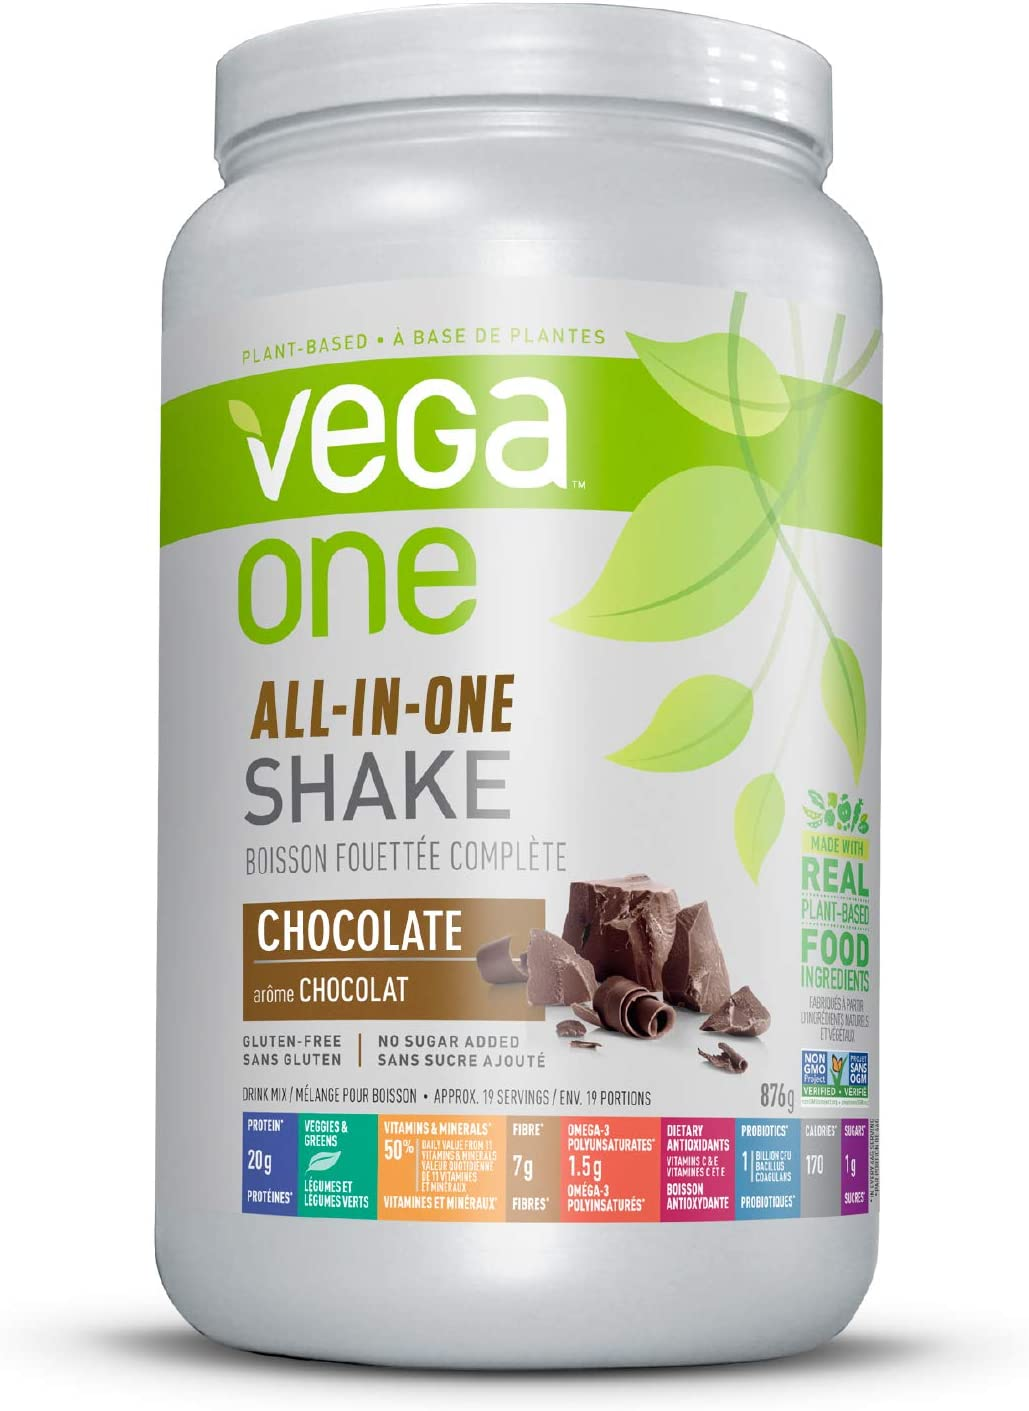 Vega One All-In-One Nutritional Shake Chocolate (19 Servings) - Plant Based Vegan Protein Powder, Non Dairy, Gluten Free, Non GMO, 30.9 Ounce (Pack of 1)